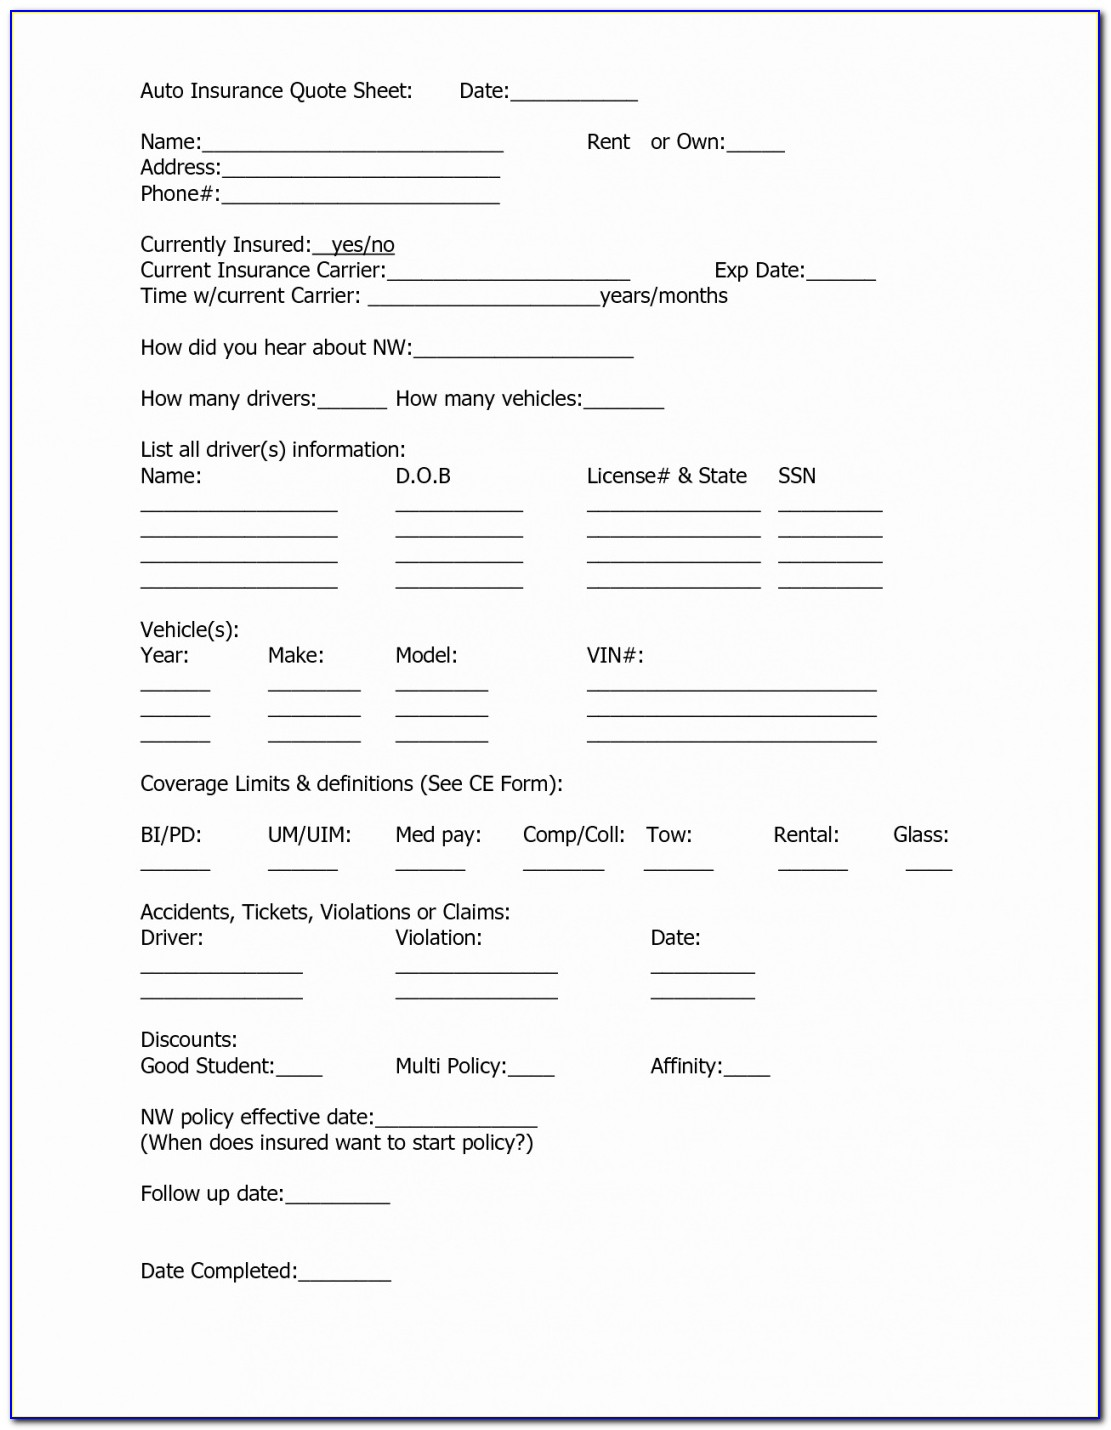 Request For Proposal Form Template Beautiful Auto Insurance Forms Insurance Proposal Template